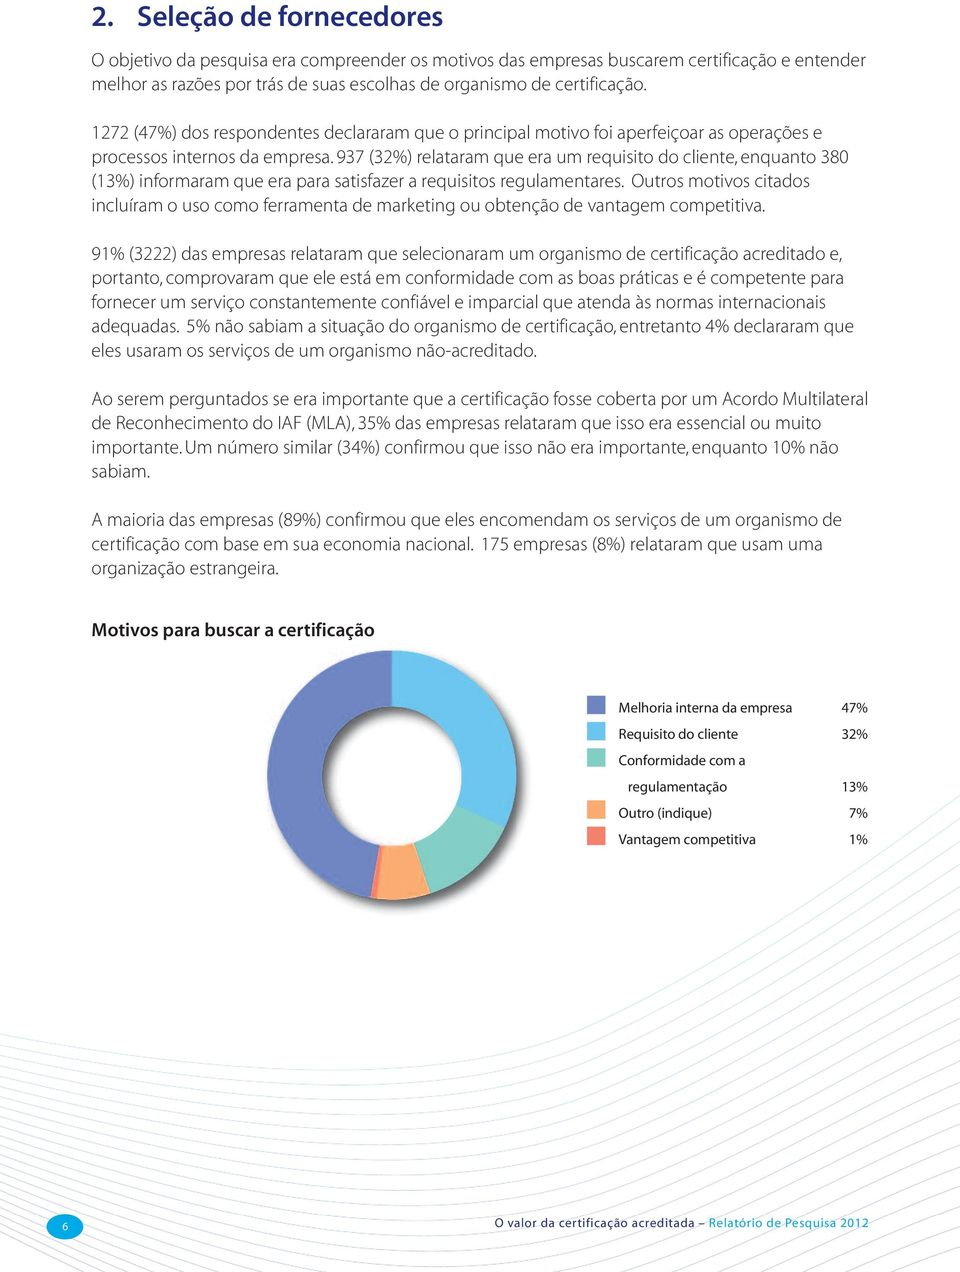 937 (32%) relataram que era um requisito do cliente, enquanto 38 (13%) informaram que era para satisfazer a requisitos regulamentares.